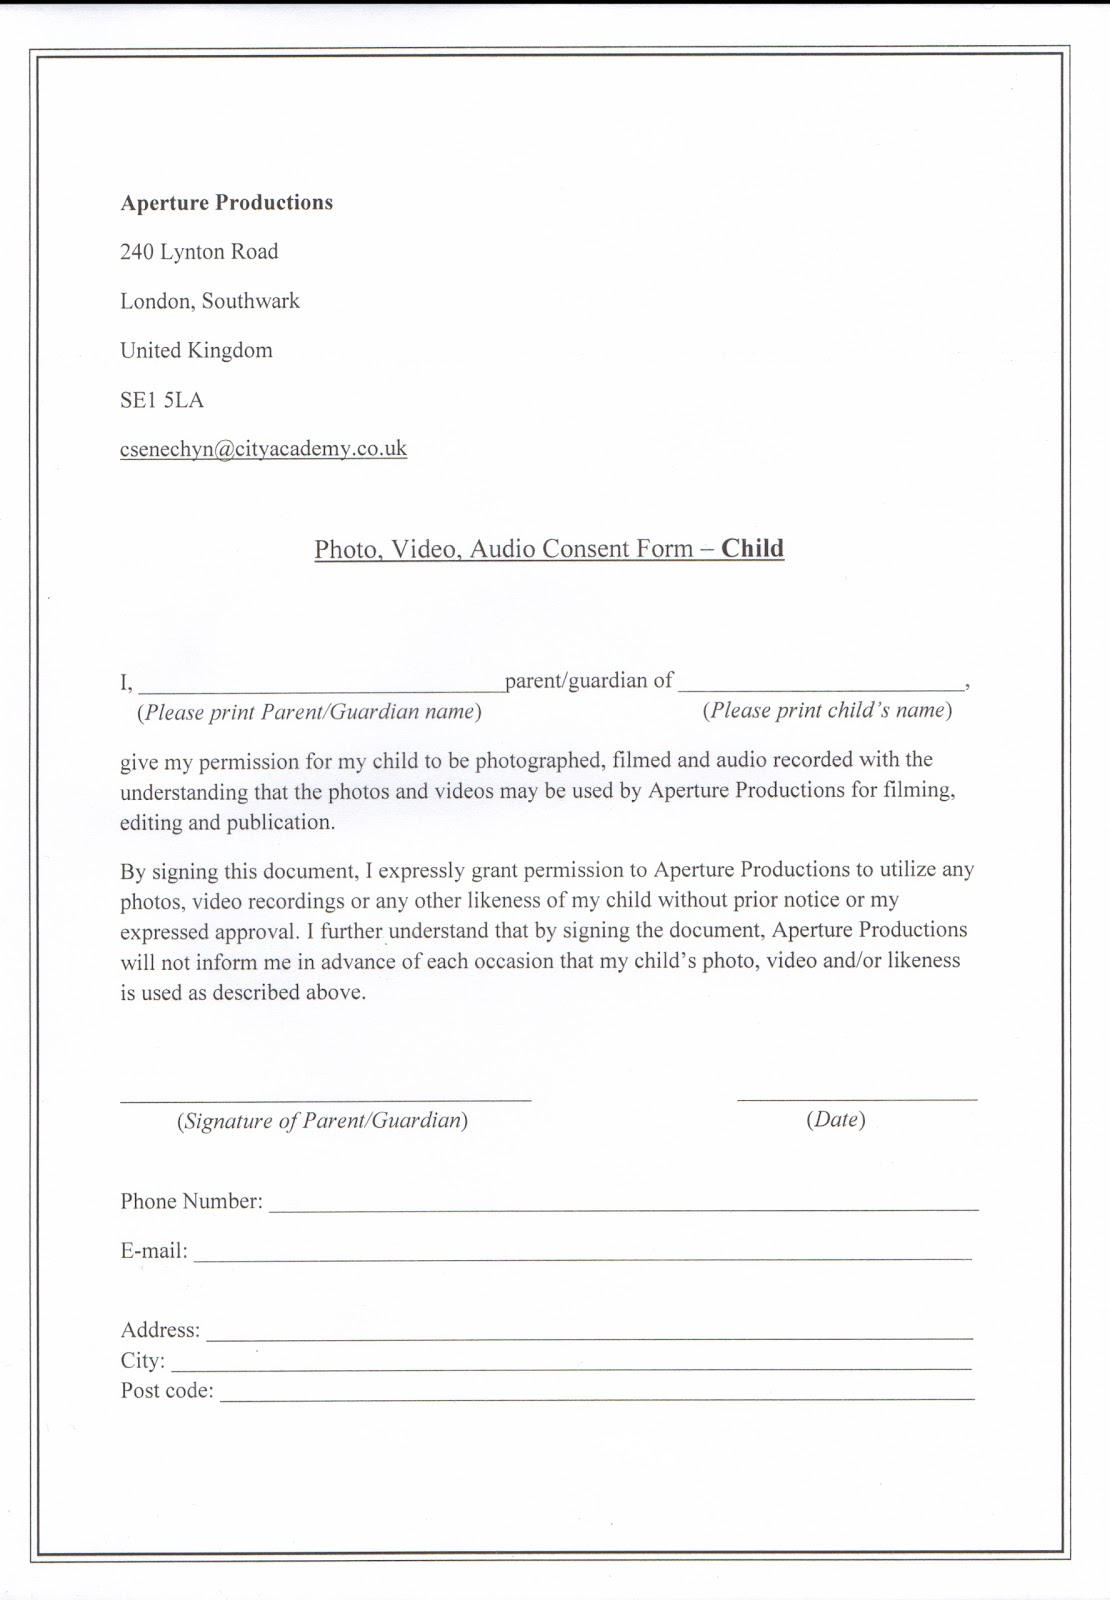 Standard consent form template images form example ideas 100 video consent form template video consent form patient photographic consent form template cover letter samples pronofoot35fo Images